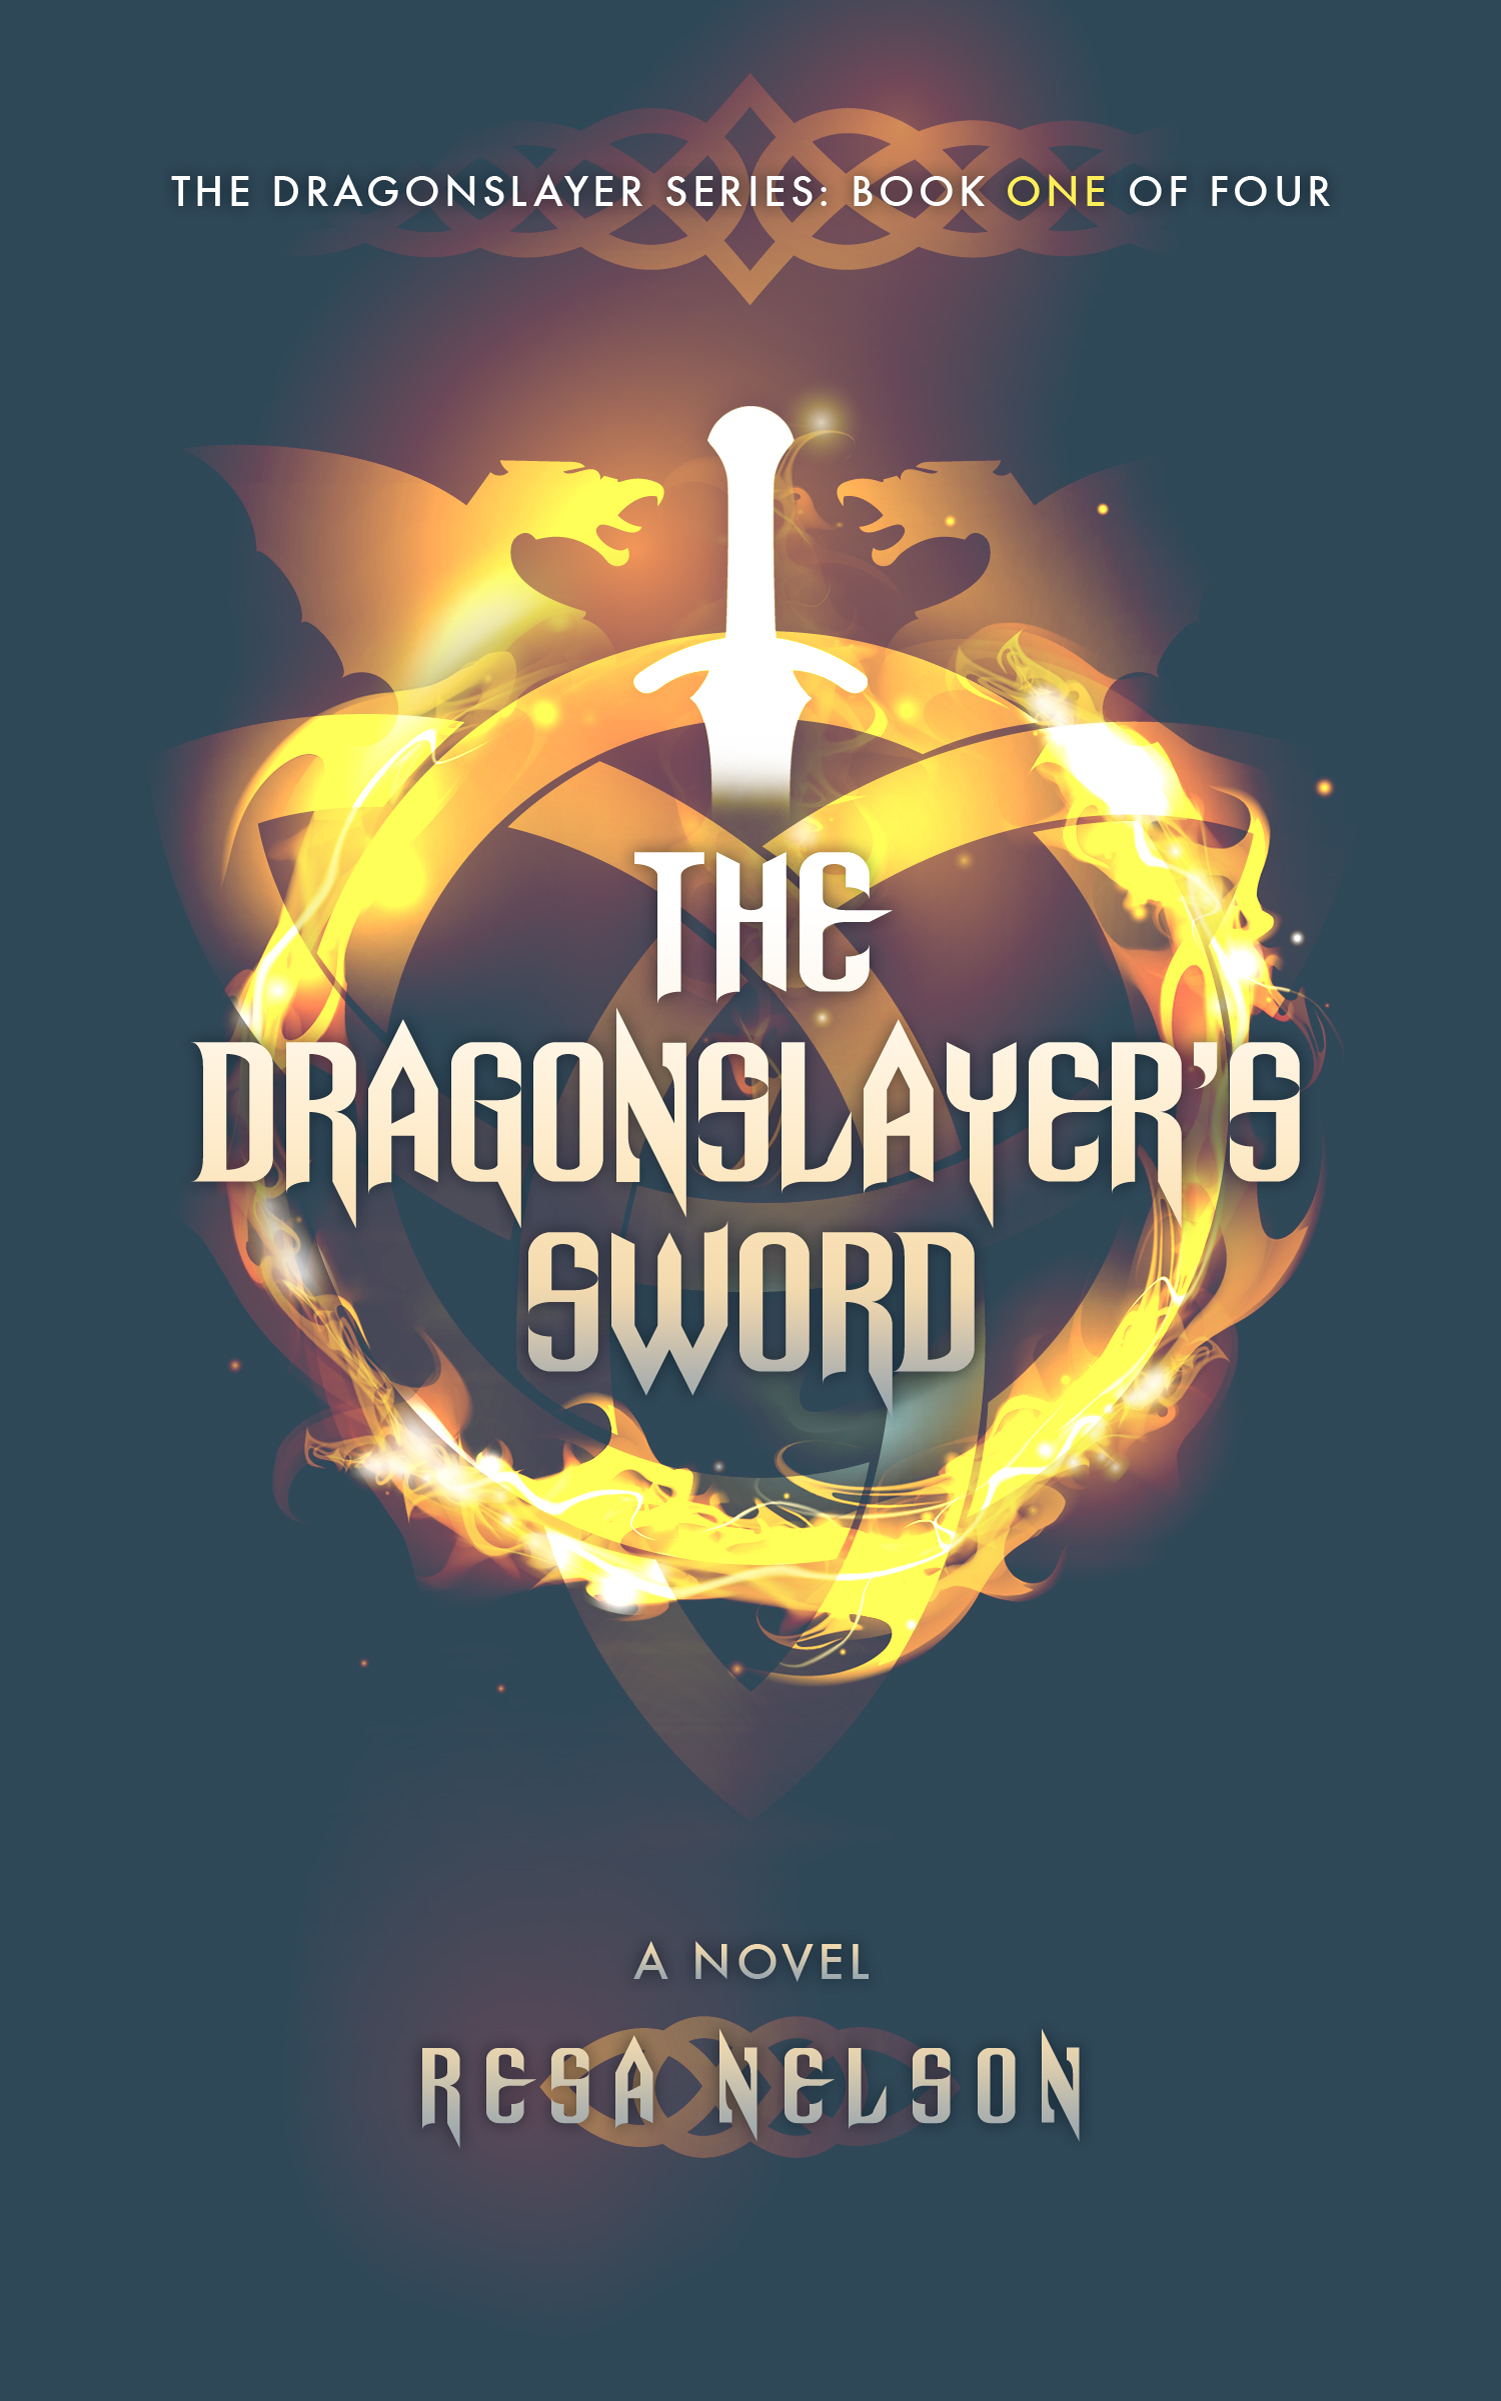 TheDragonslayersSword book cover